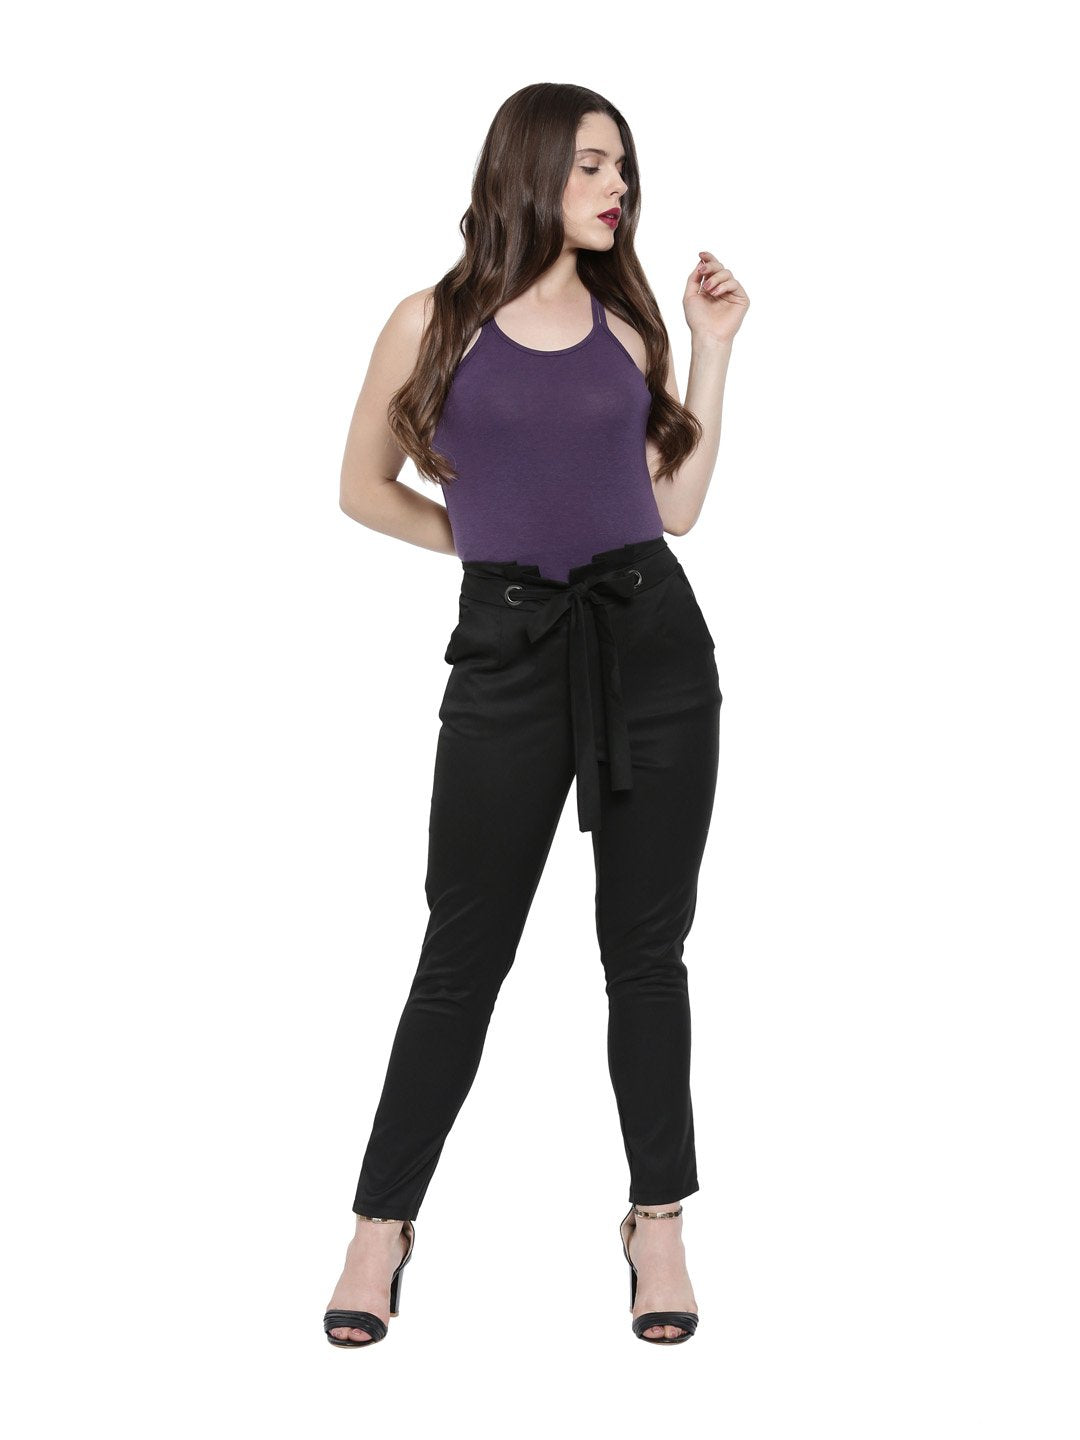 Women's Bamboo Relaxed Fit Knotted Back Top - Midnight Plum (AWFR008P)